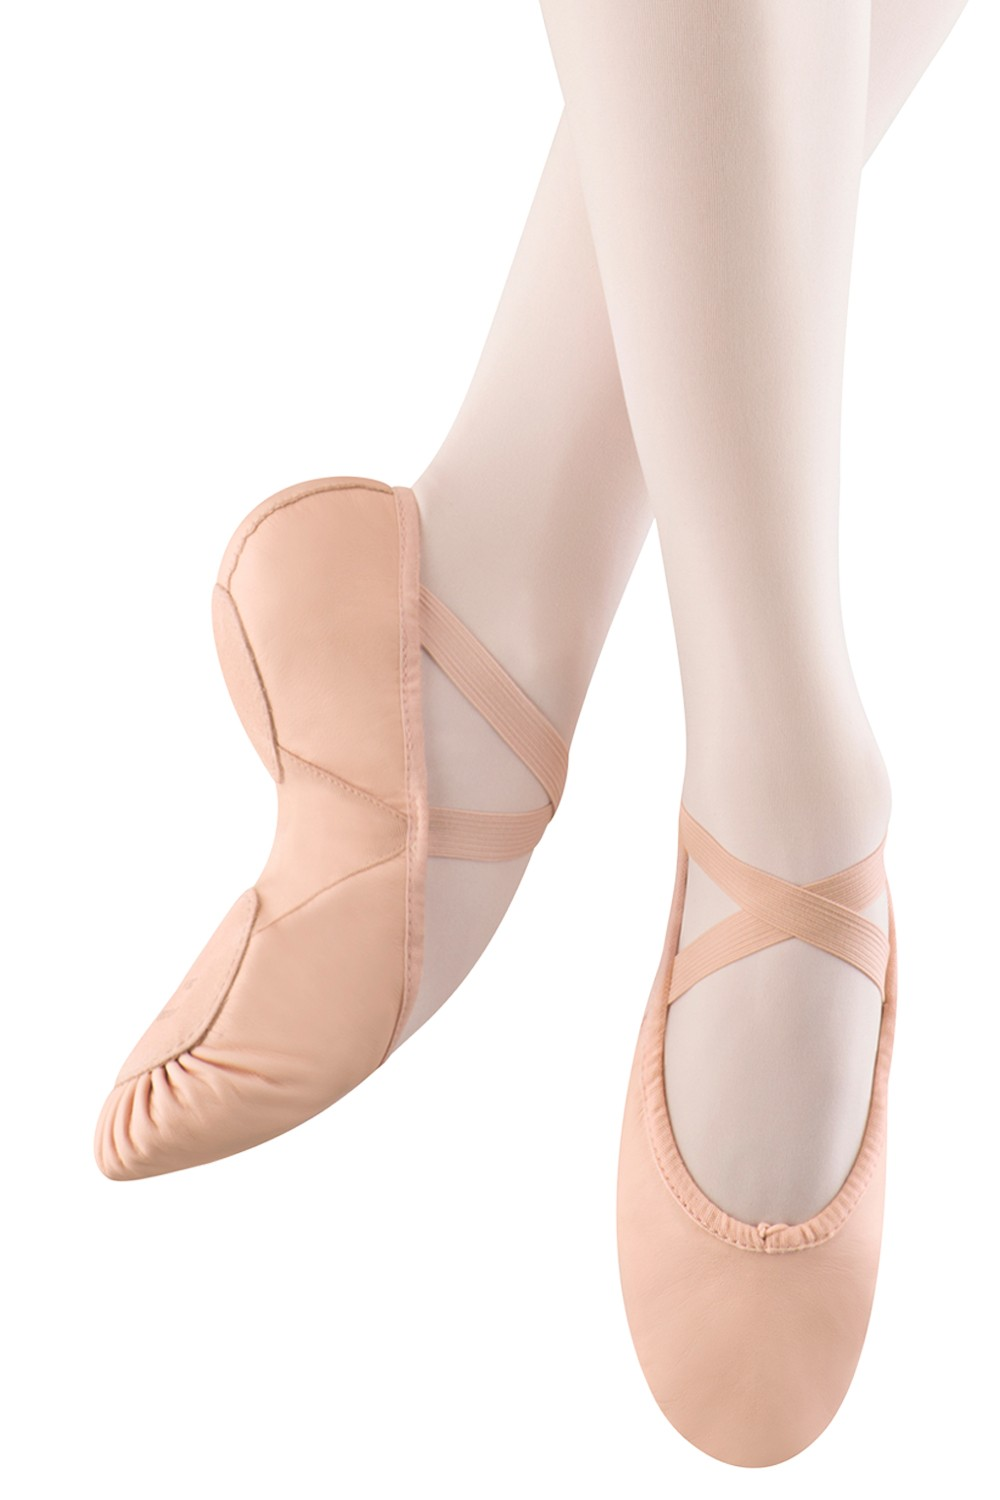 Prolite Ii Hybrid Women's Ballet Shoes